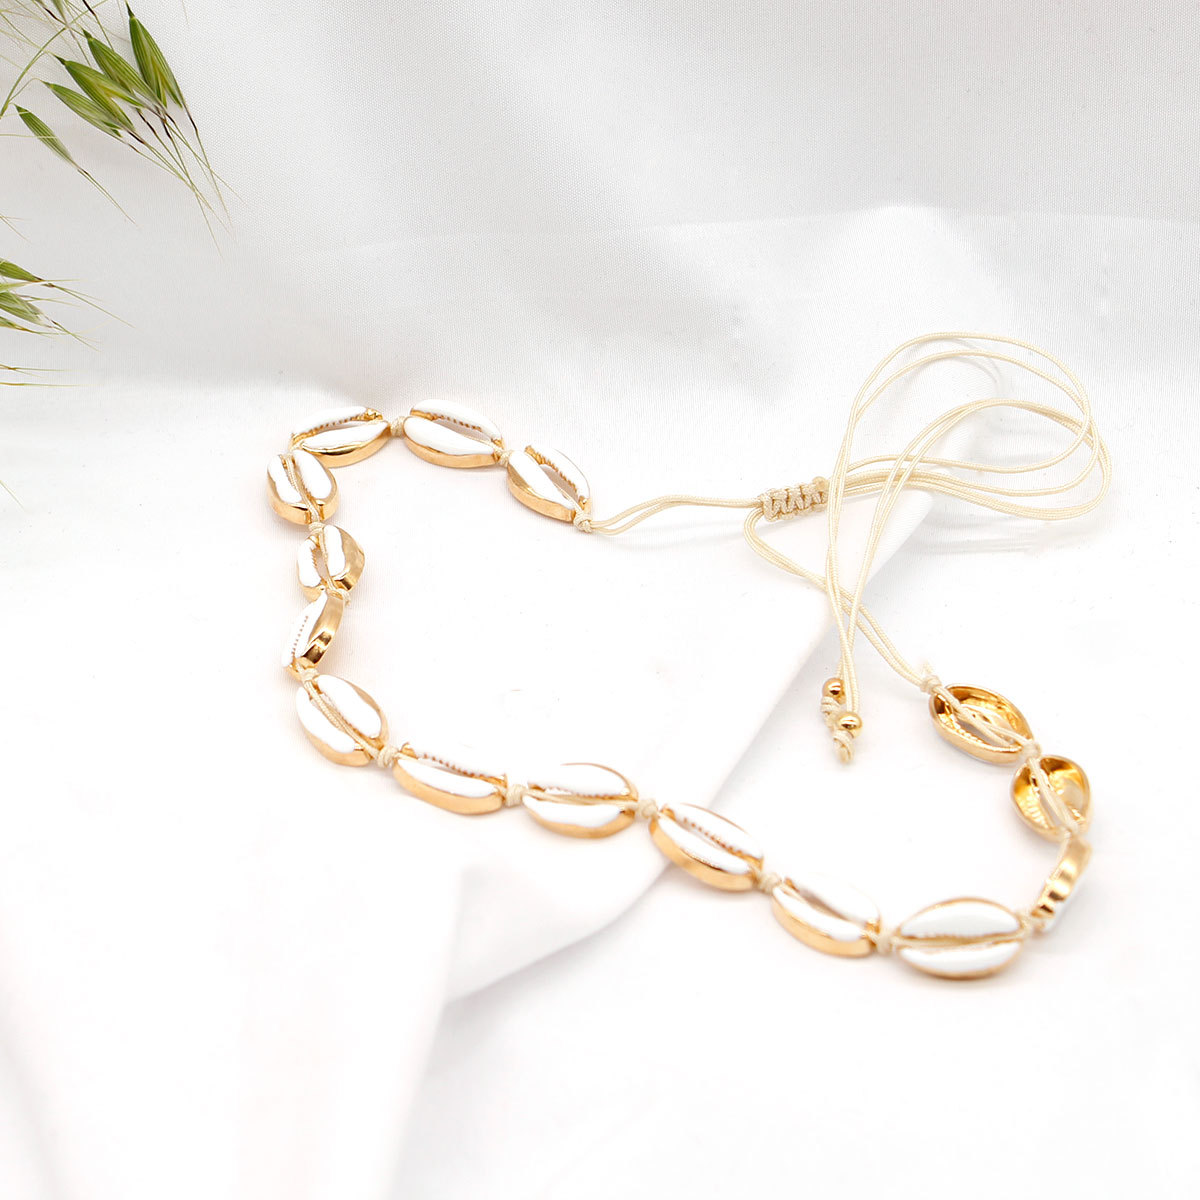 New Fashion Natural Shell Gold Metal Chain Necklace Bracelet Rope Chain Exquisite Bohemian Jewelry Sets in Jewelry Sets from Jewelry Accessories